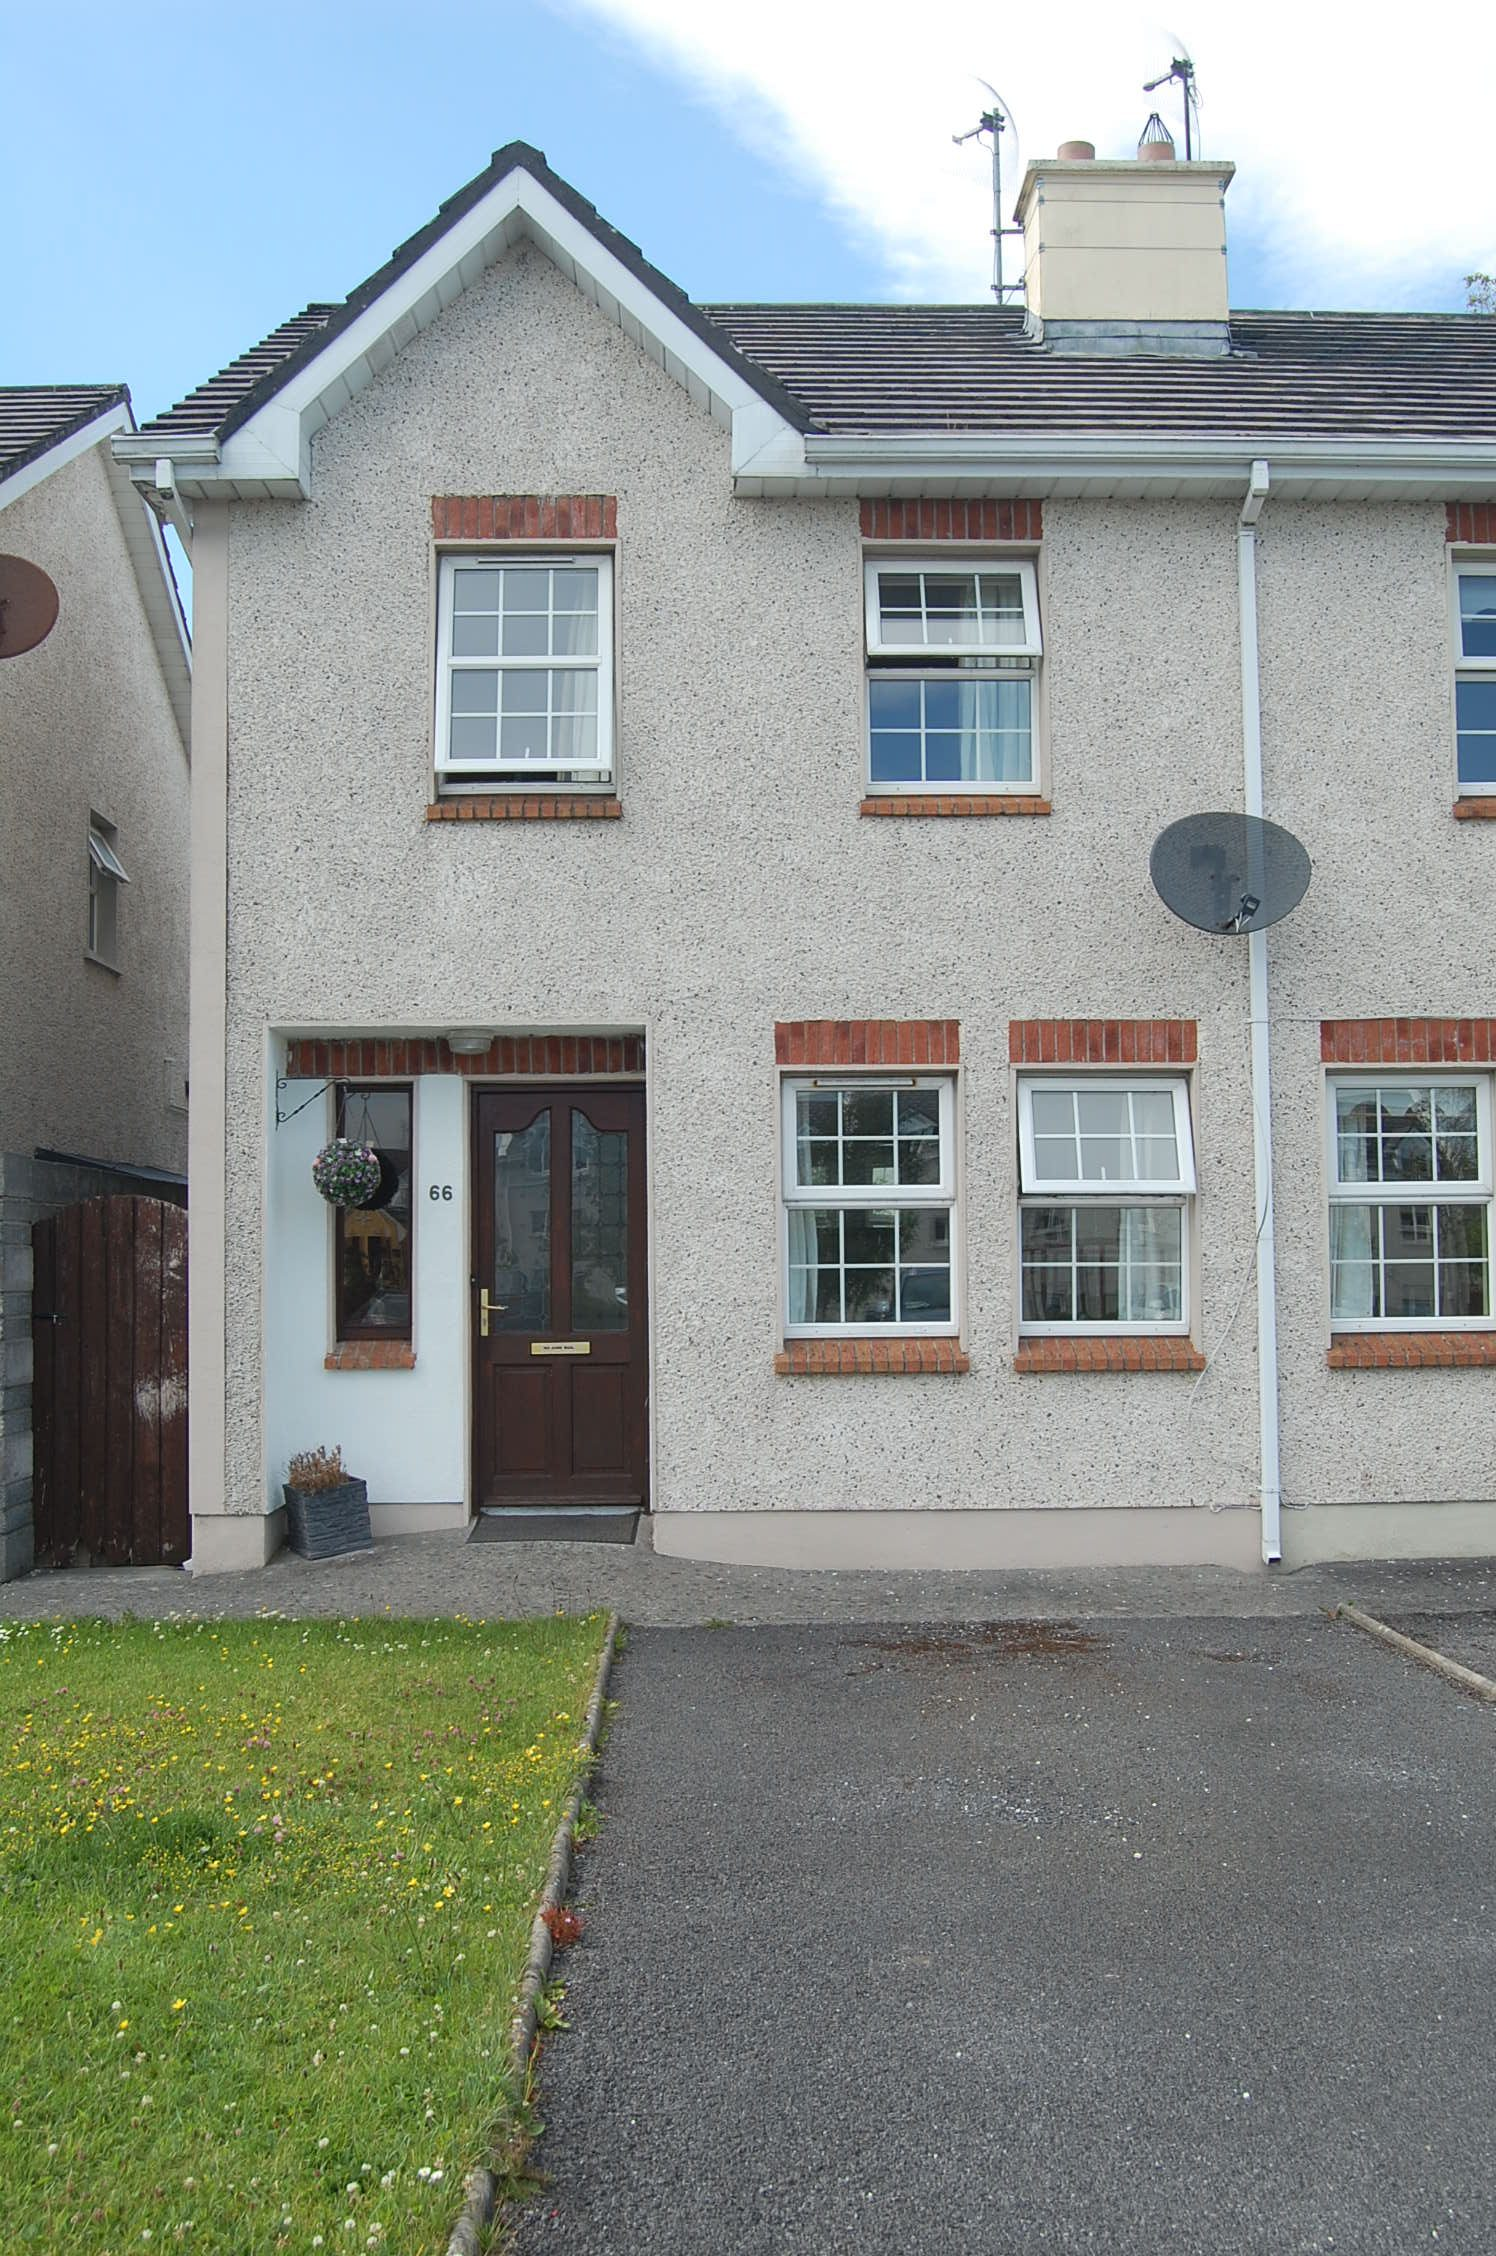 66 Frenchpark, Oranmore, Co. Galway Eircode: H91 R2V5